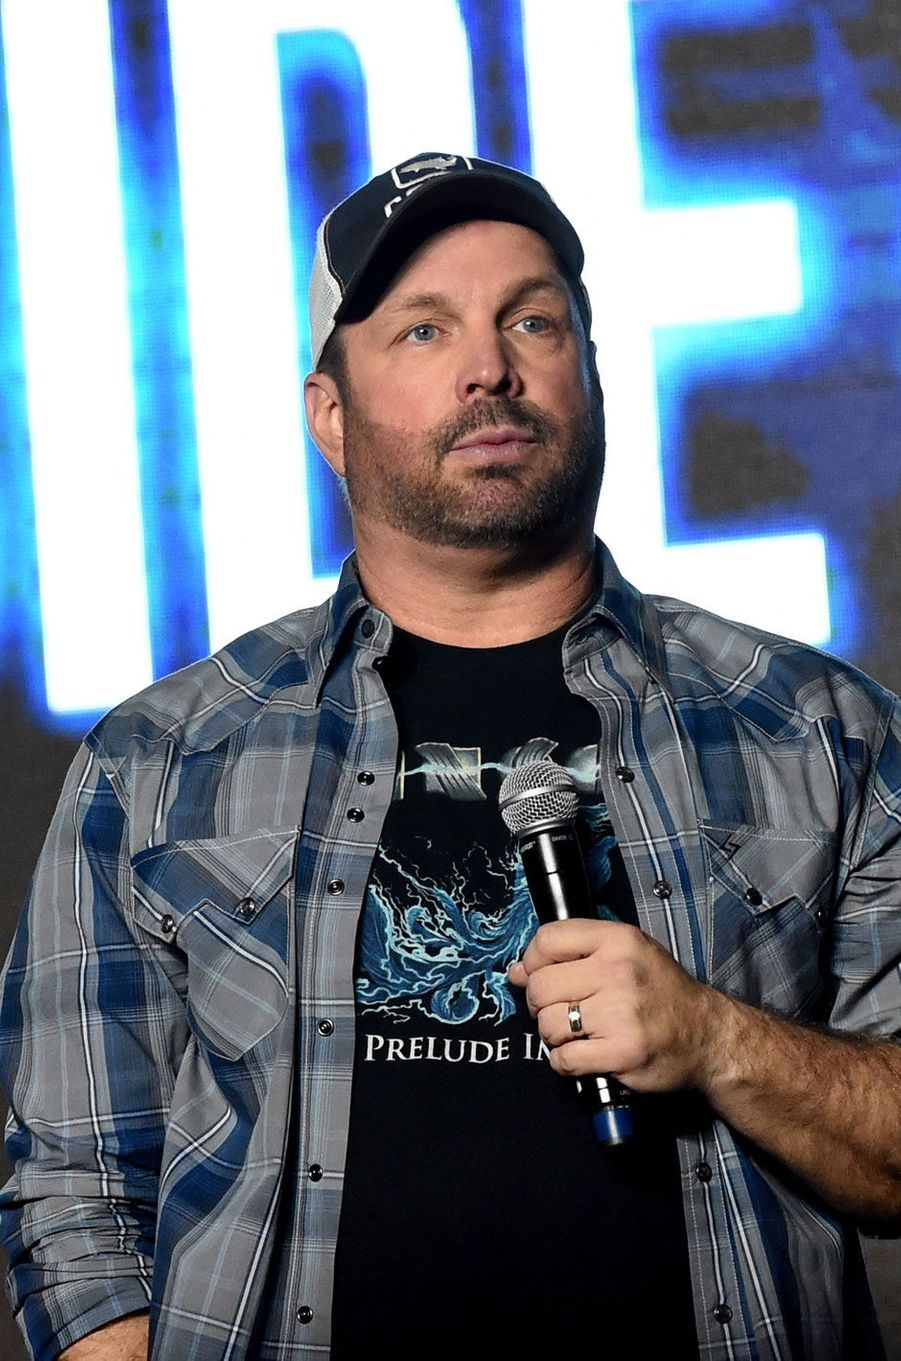 Garth Brooks, 60 millions de dollars